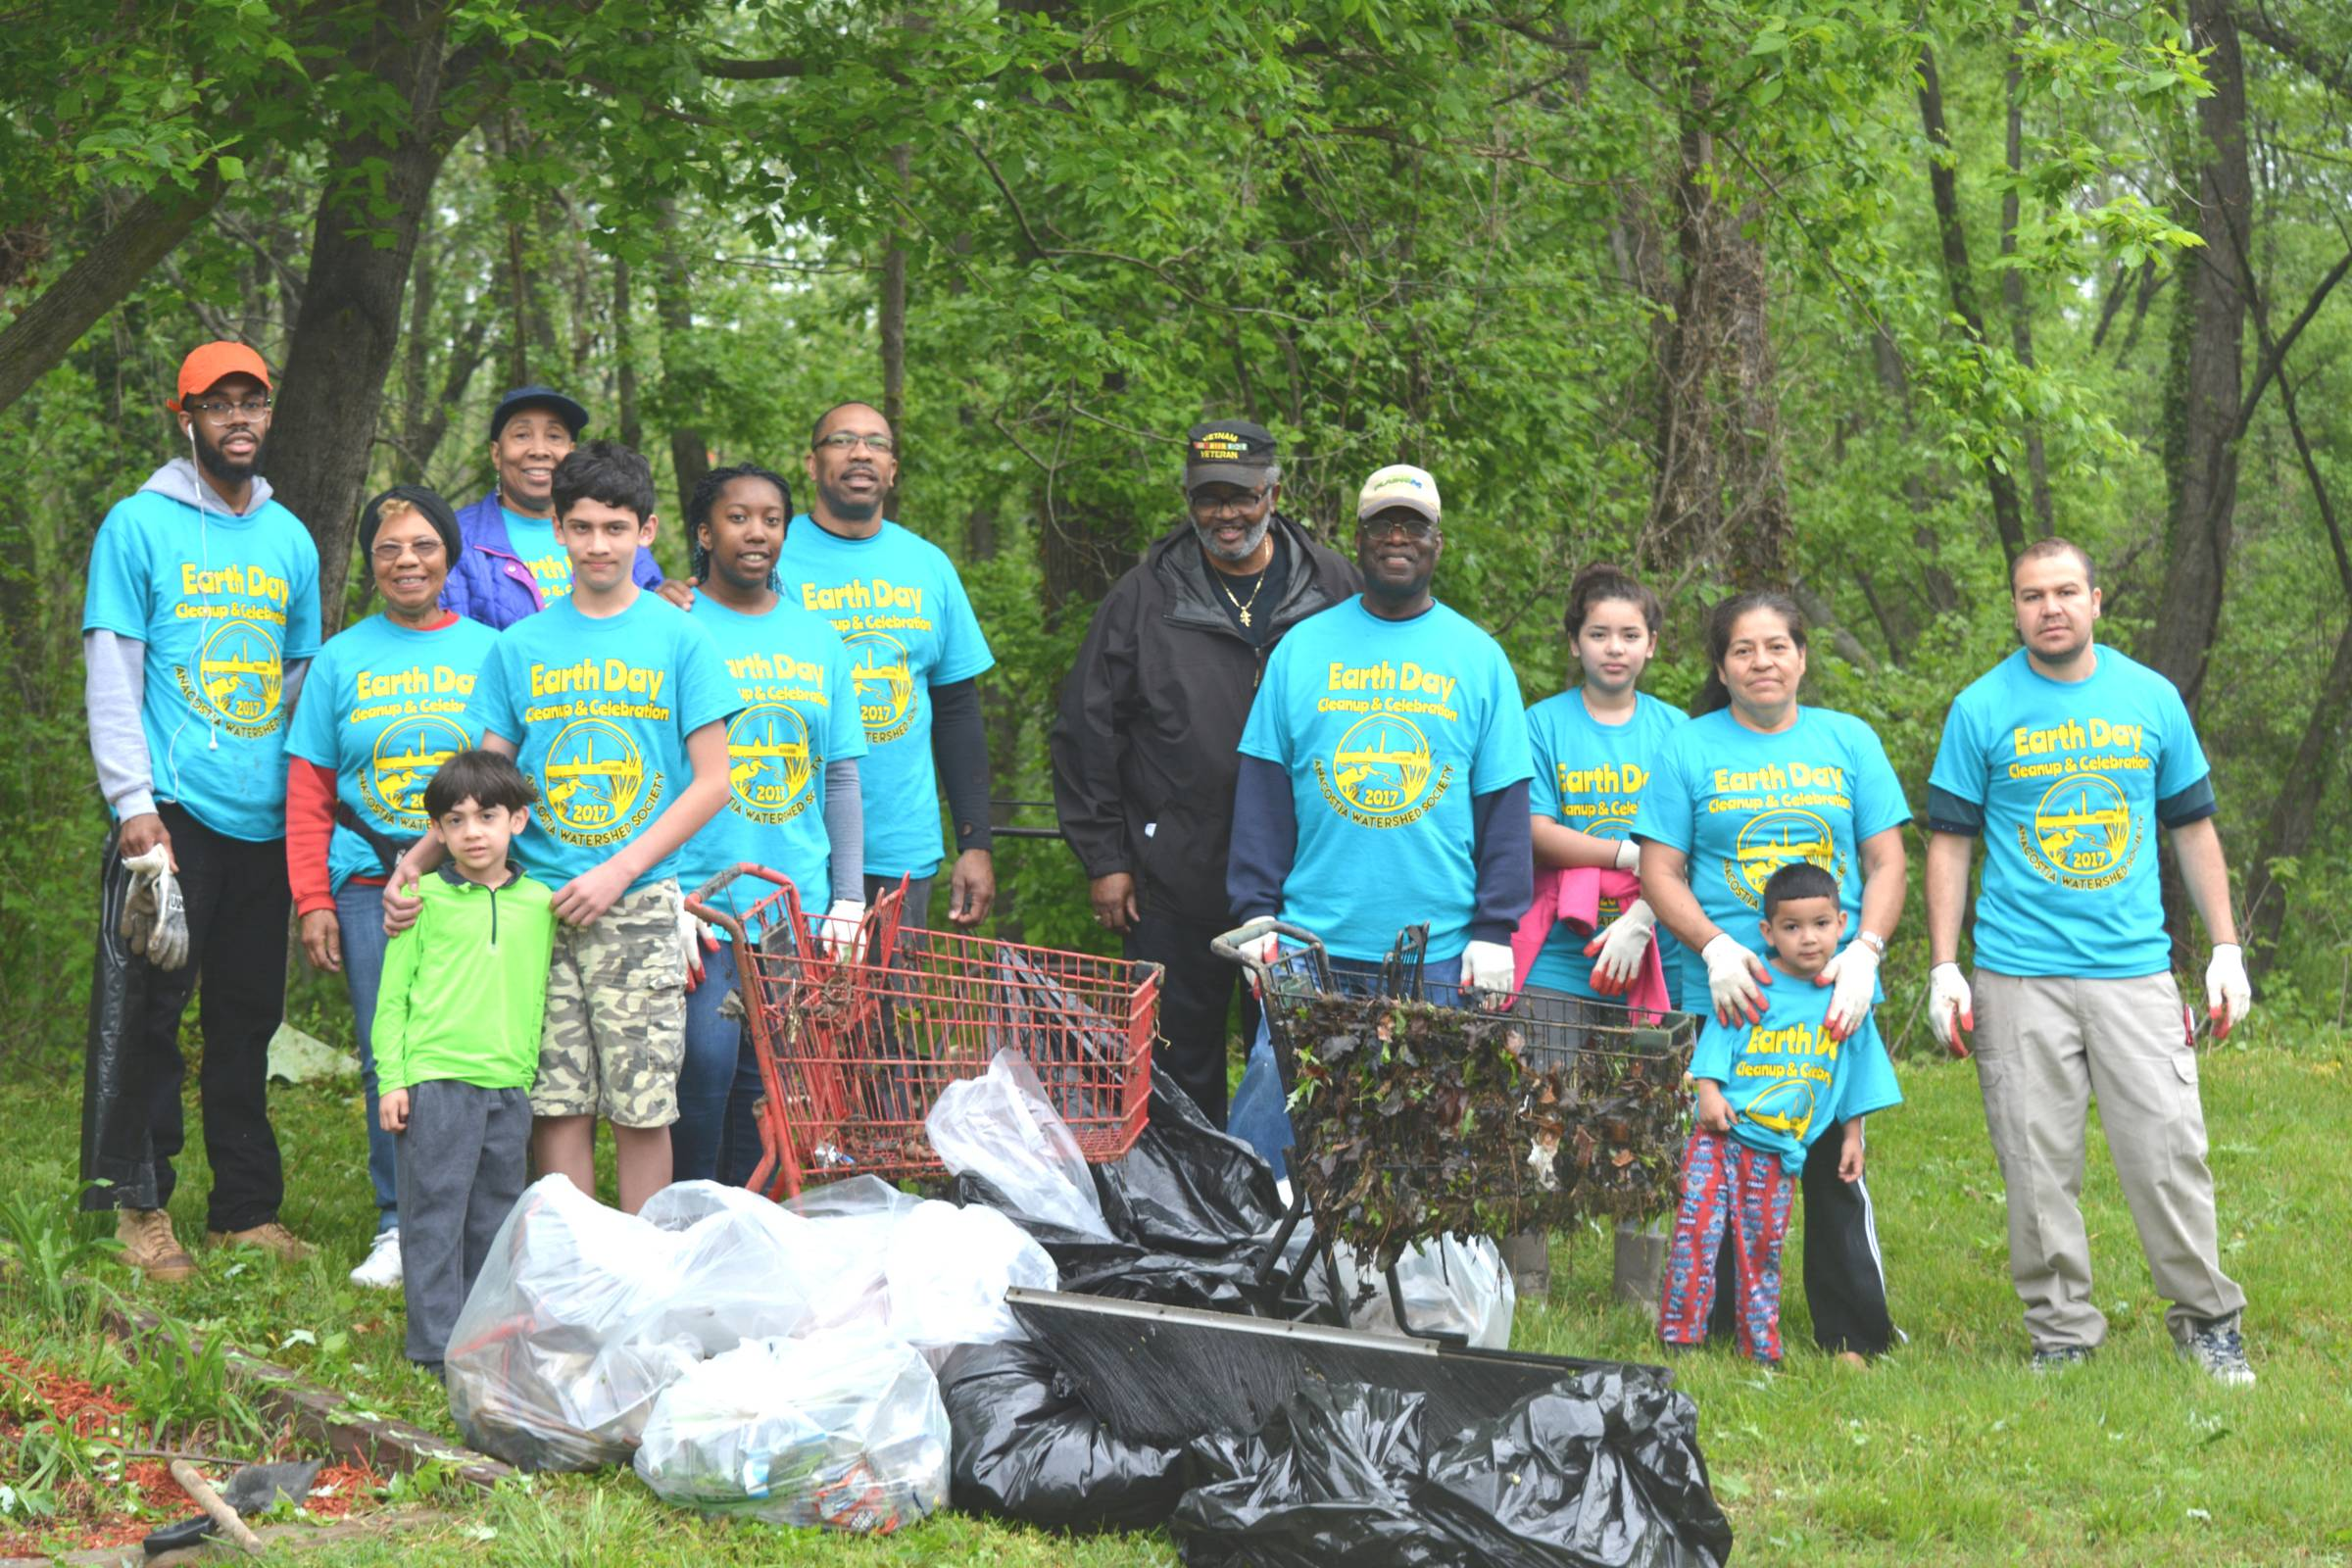 Earth Day Cleanup